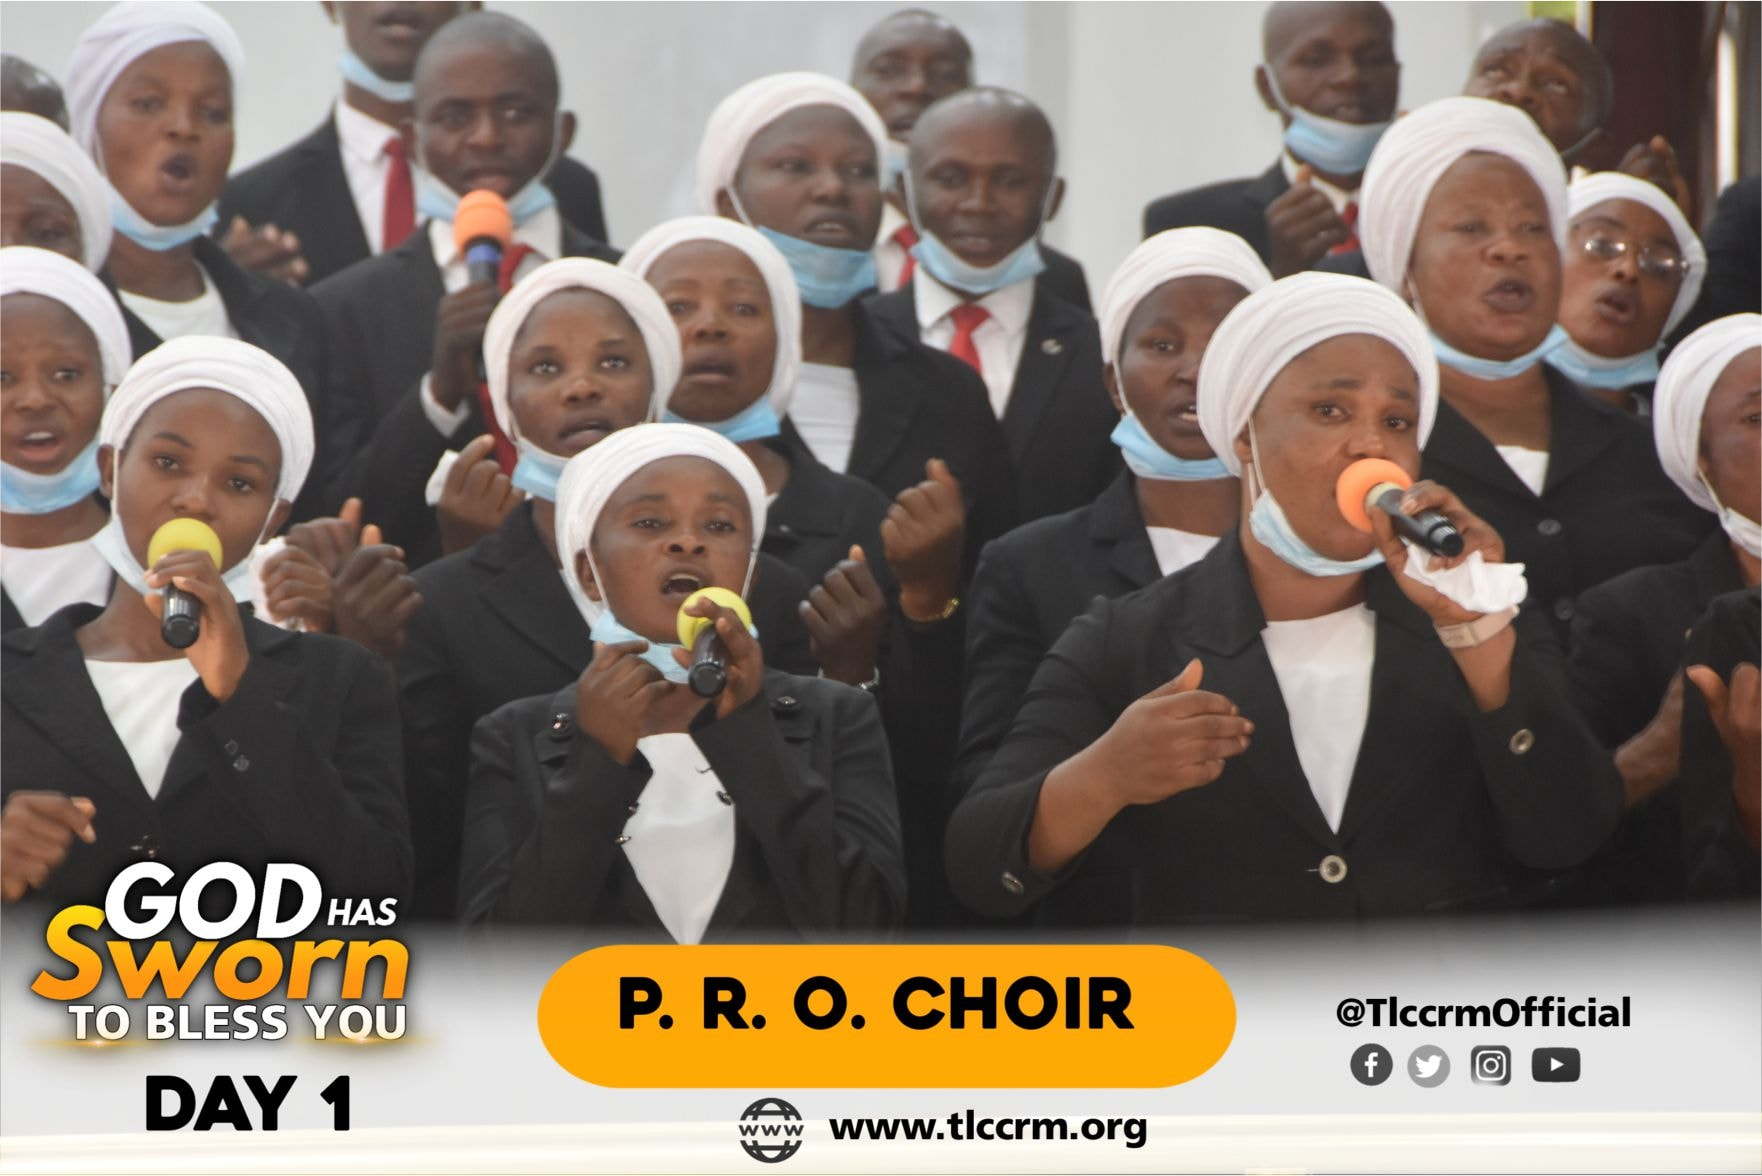 PRO Choir of the Lord's Chosen